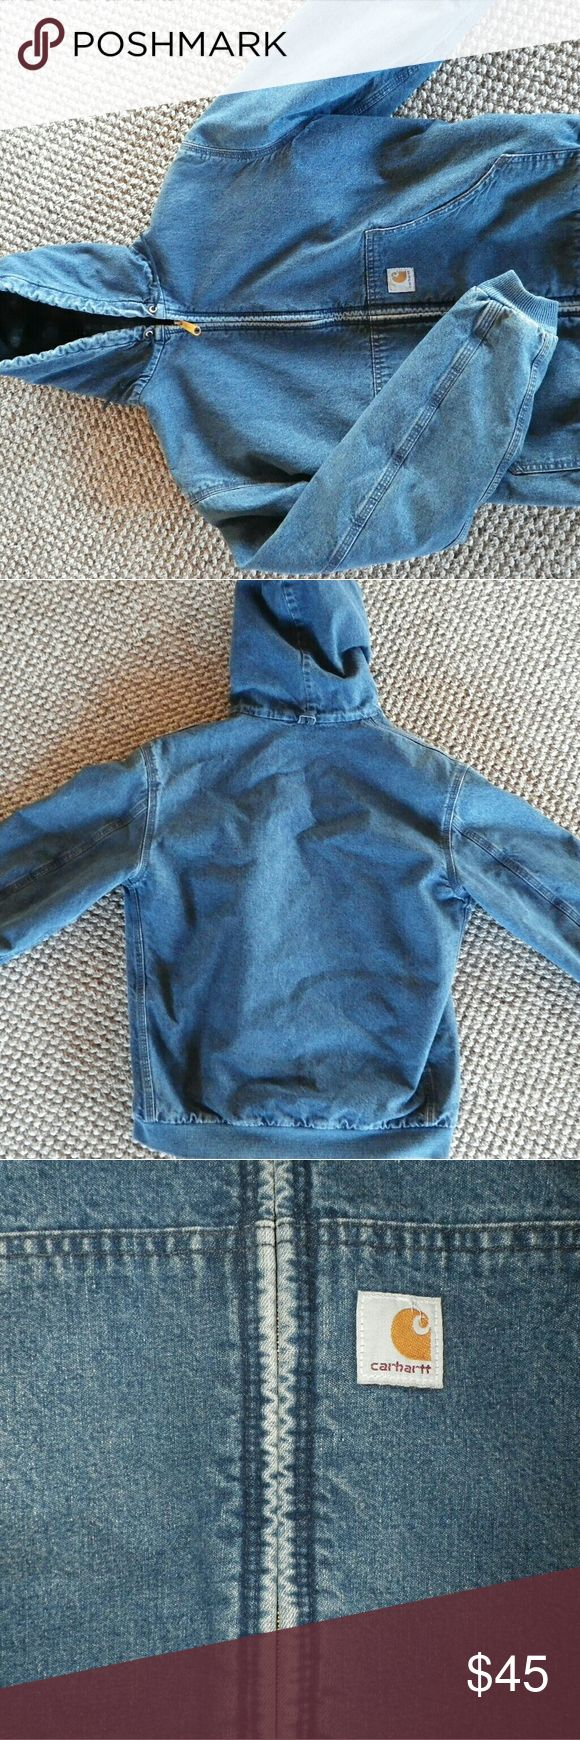 Denim Carhartt Insulated Jacket Boys size XL which fits a women's size sm/med.  In very good condition.  Perfect for outdoor work.  Zips up.  Lined. Carhartt Jackets & Coats Utility Jackets